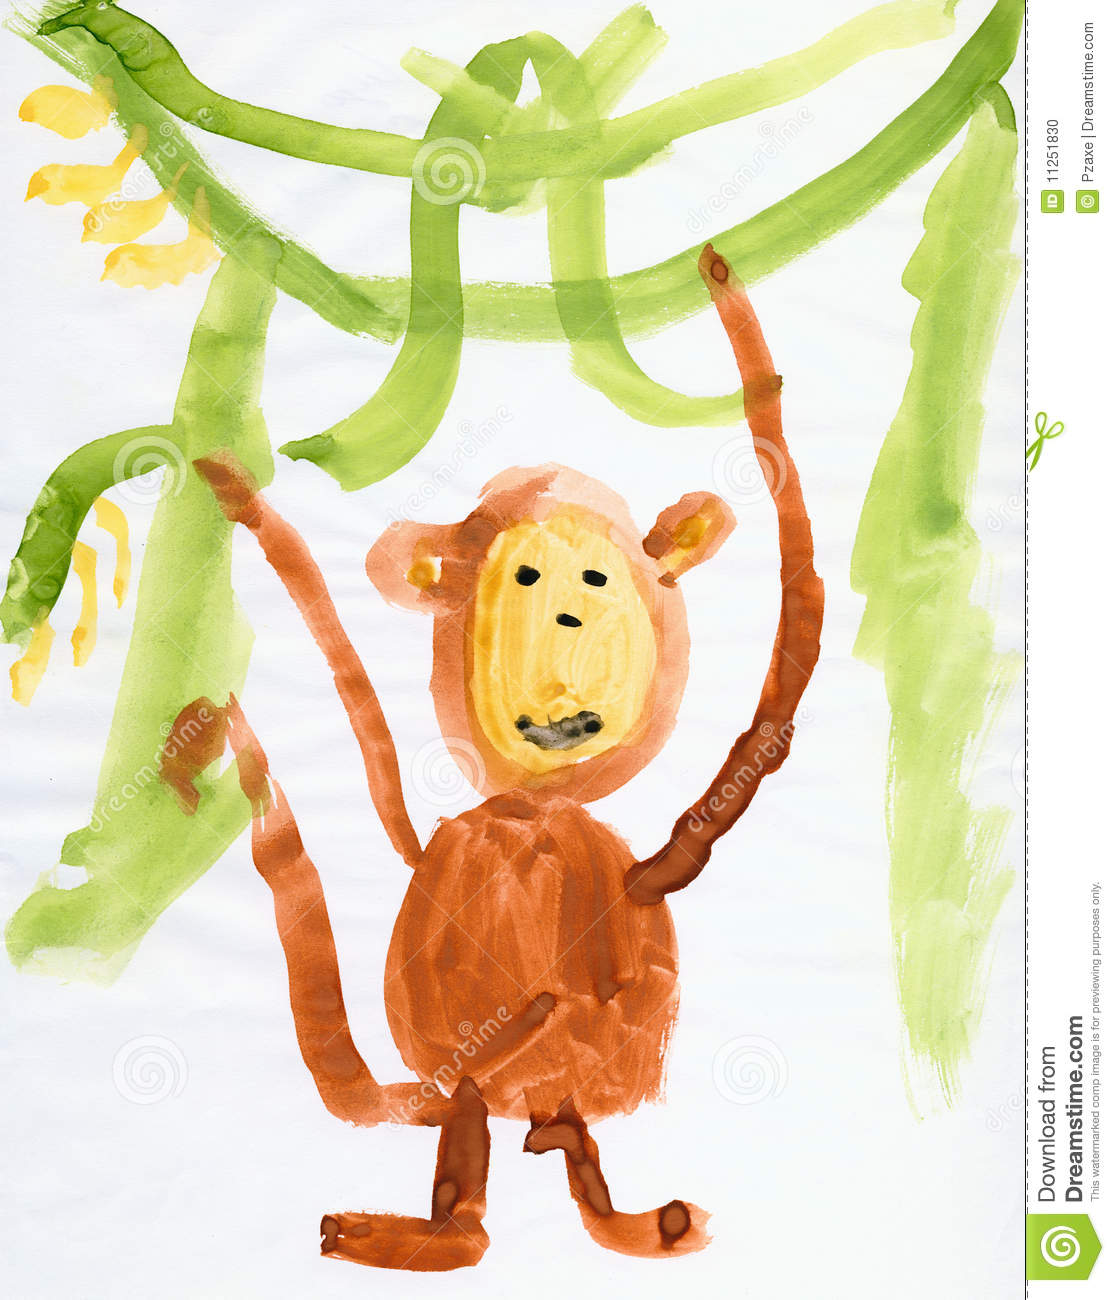 Drawing Made Child Monkey And Green Lianas Stock Photo Image 11251830